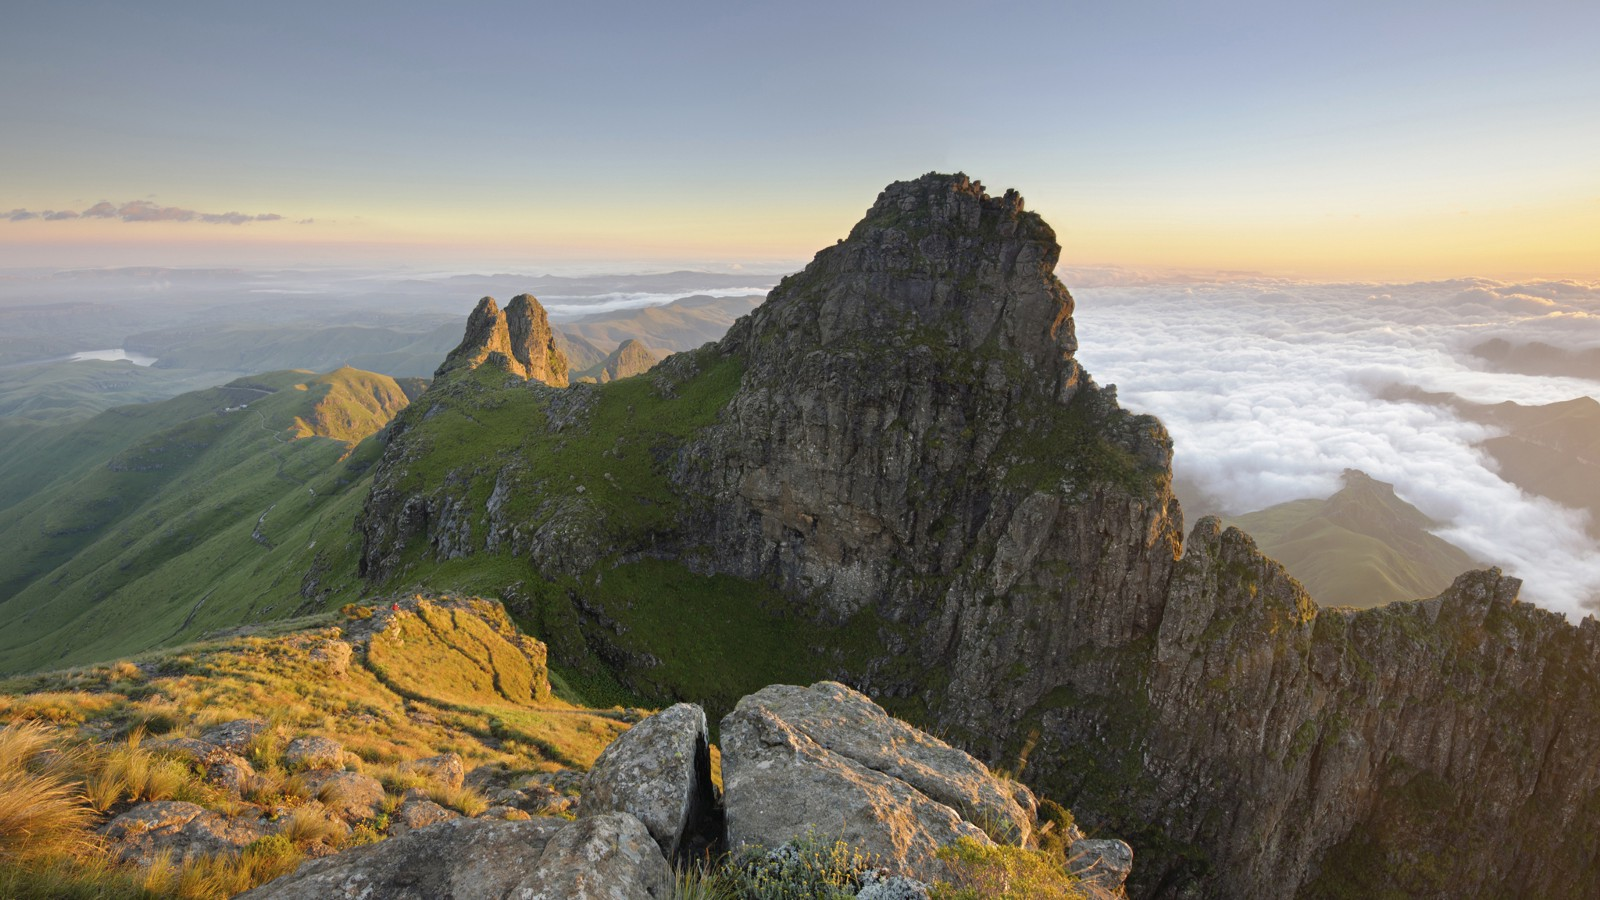 Panoramic view of a mountain peak in the Drakensberg, South Africa